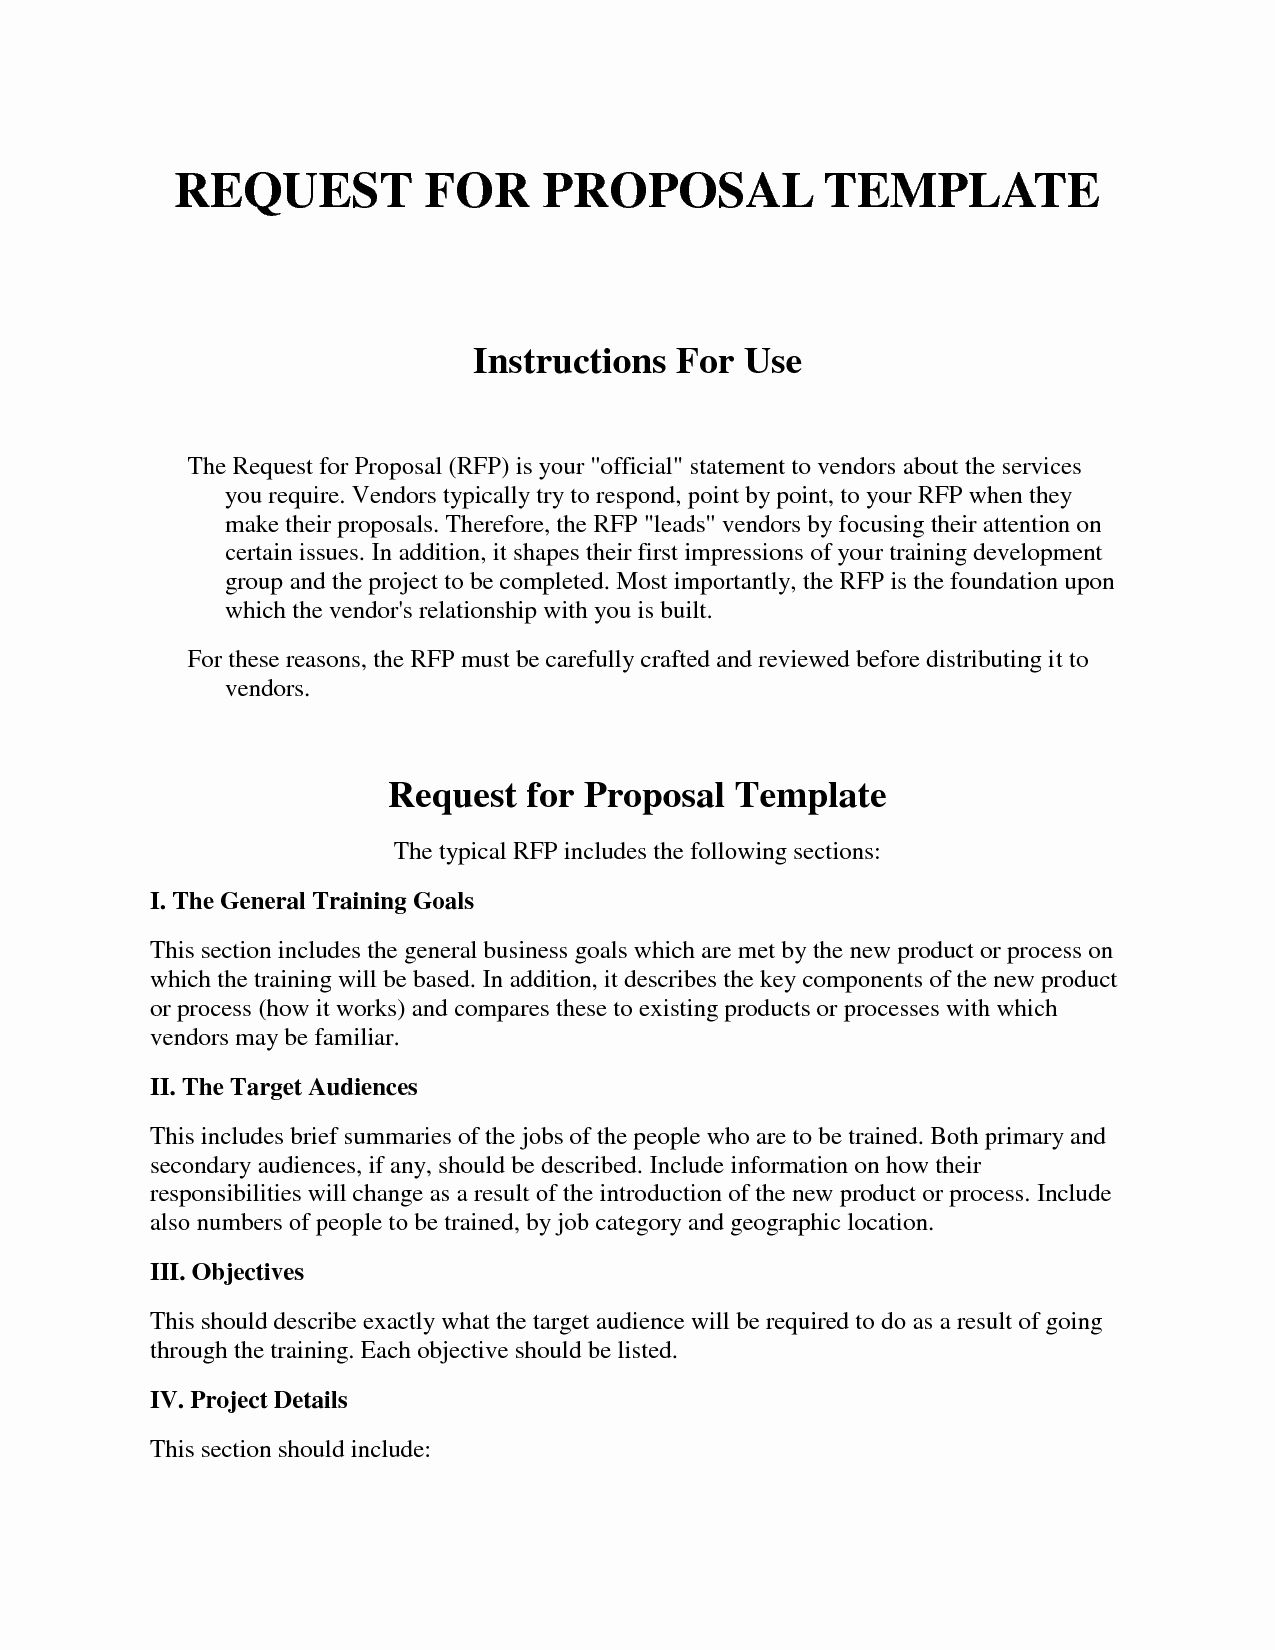 Request For Proposal Template New Request For Proposal Template Proposal Templates Request For Proposal Business Proposal Template